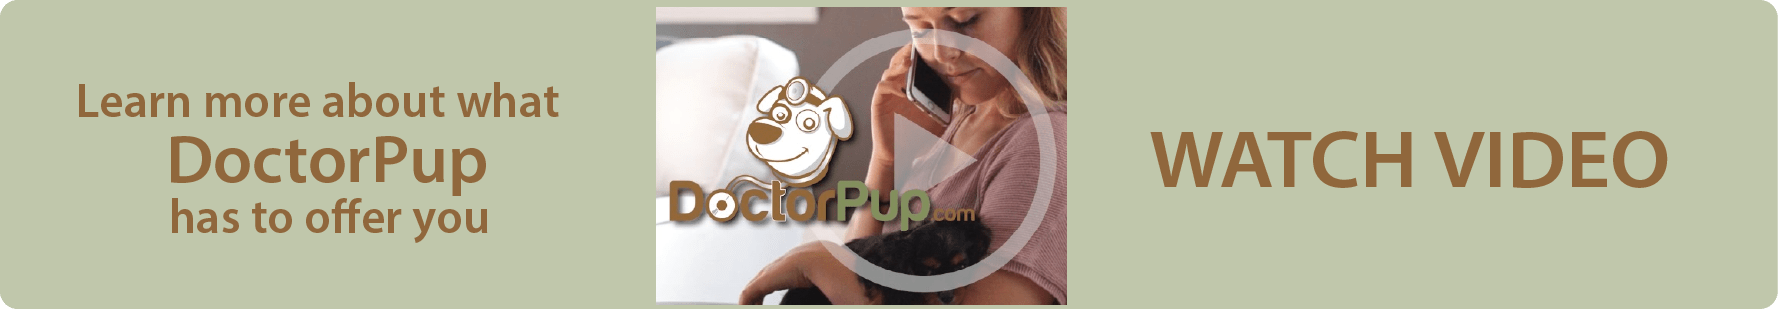 See what DoctorPup can do for you